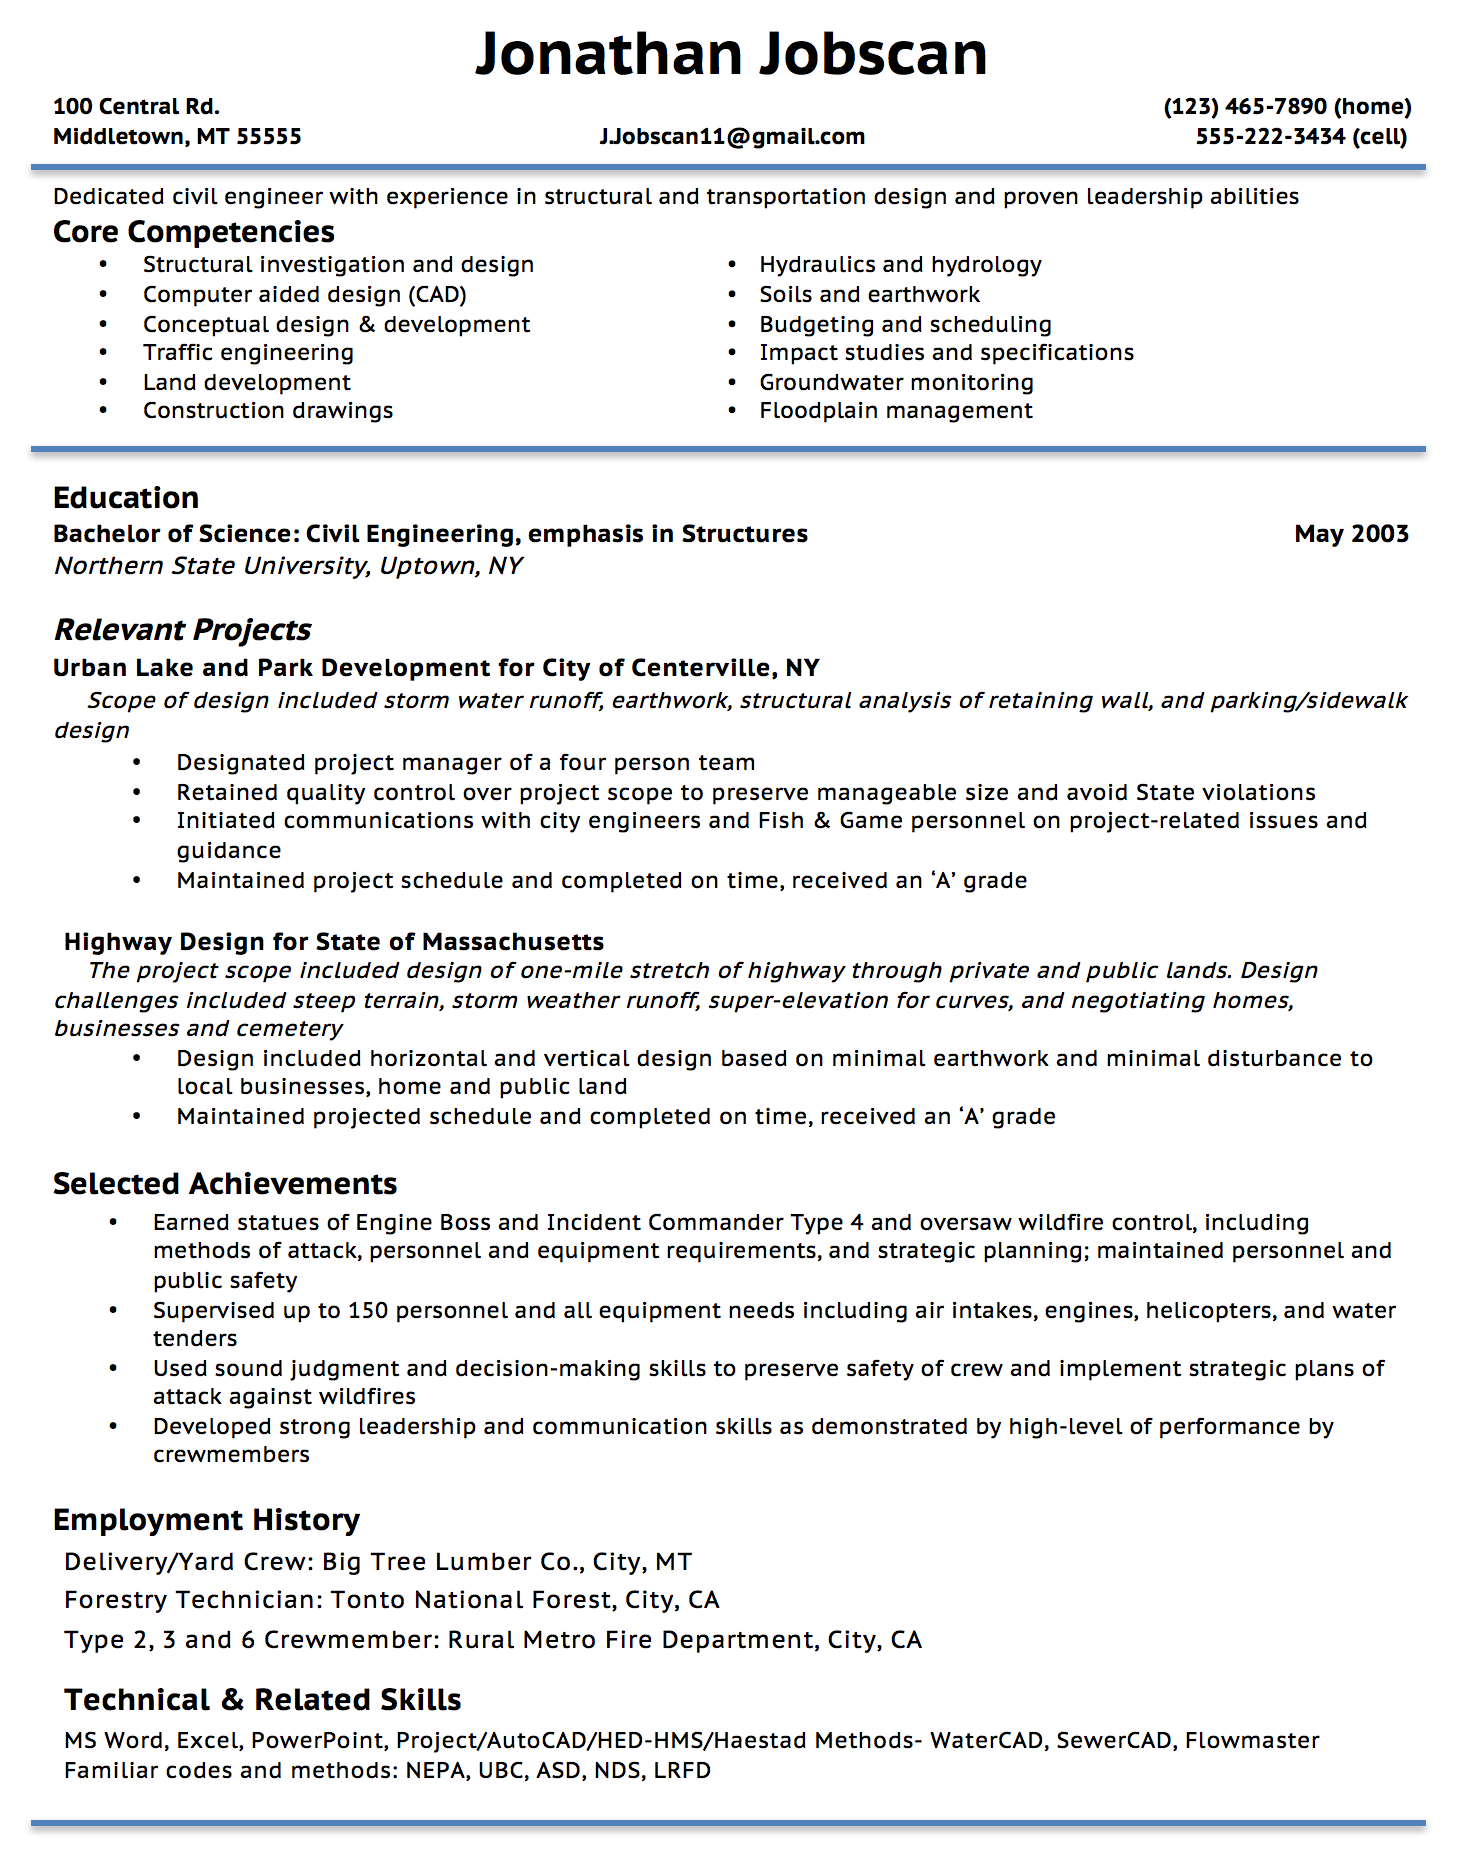 Picnictoimpeachus  Nice Resume Writing Guide  Jobscan With Goodlooking Example Of A Functional Resume Format With Nice Marketing Resume Sample Also Law Clerk Resume In Addition Example Skills For Resume And Security Resume Examples As Well As Marketing Skills Resume Additionally Operation Manager Resume From Jobscanco With Picnictoimpeachus  Goodlooking Resume Writing Guide  Jobscan With Nice Example Of A Functional Resume Format And Nice Marketing Resume Sample Also Law Clerk Resume In Addition Example Skills For Resume From Jobscanco